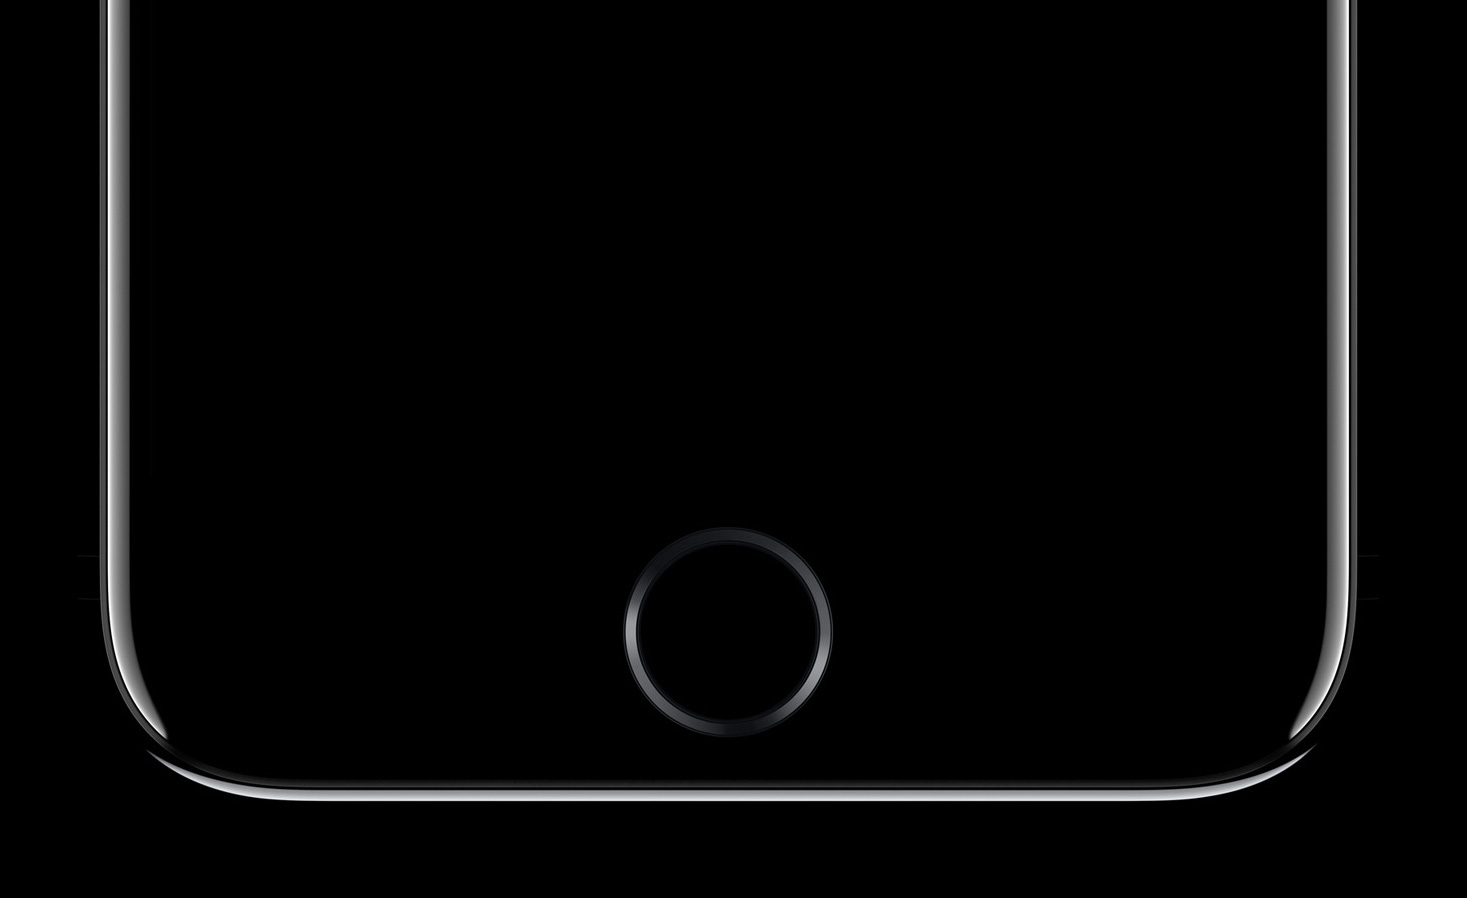 An image showing an iPhone with black screen and Touch ID below the screen